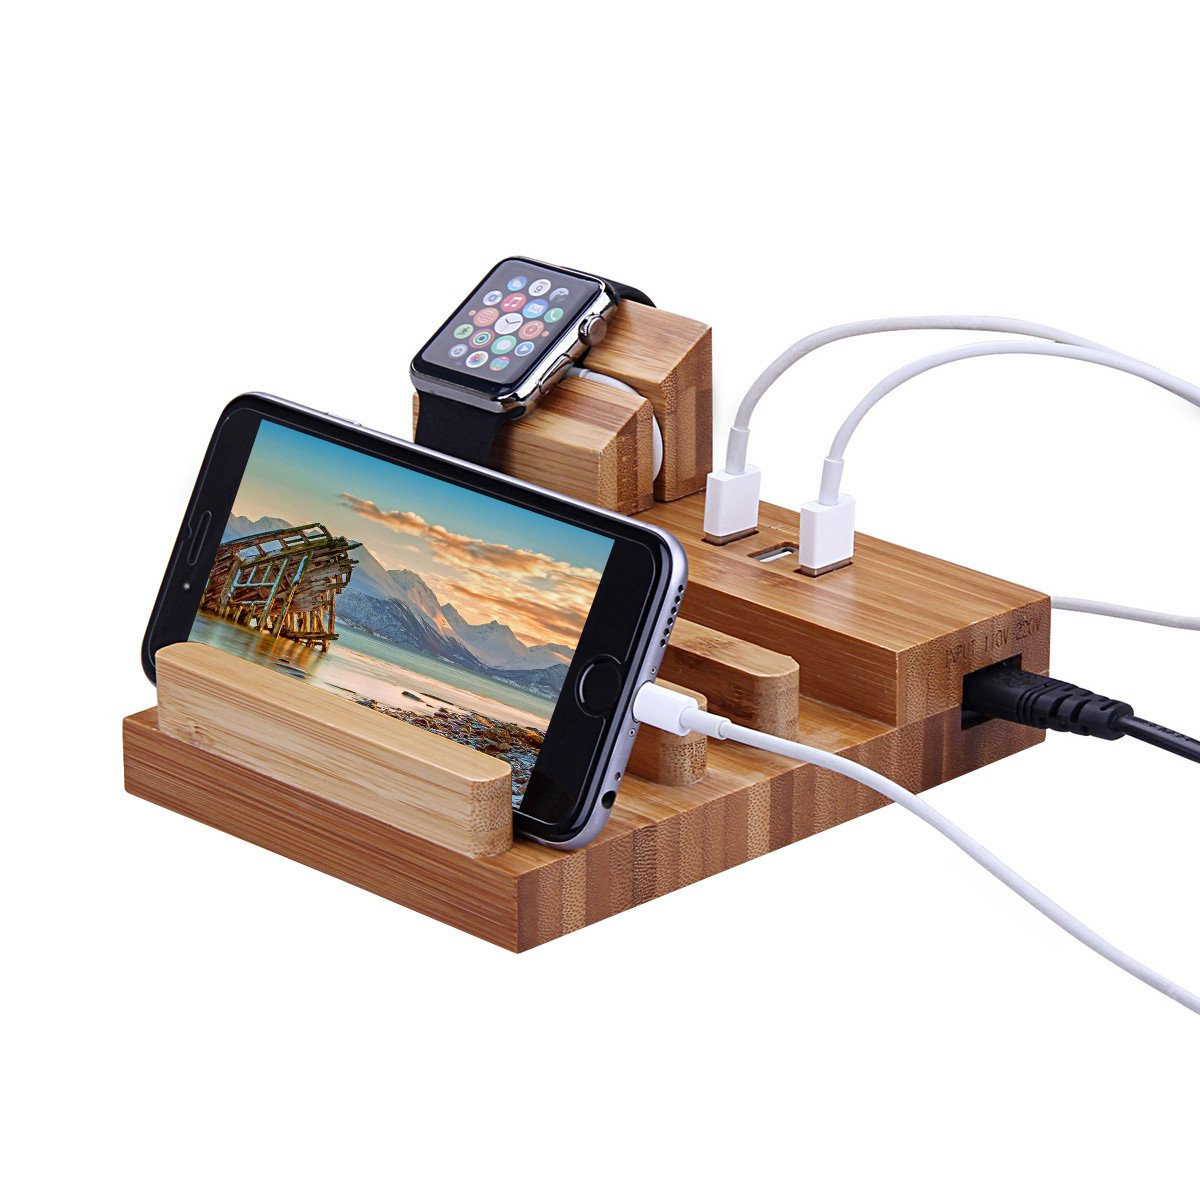 Wood Charging Station, MWAY Bamboo Wood USB Charging Organizer Dock Apple Watch Charger Bracket Stand, for iPhone 7/7Plus/6s/6/Plus/5s,iPad,Samsung,Most Smartphones,3 USB Ports 5V 3A 2